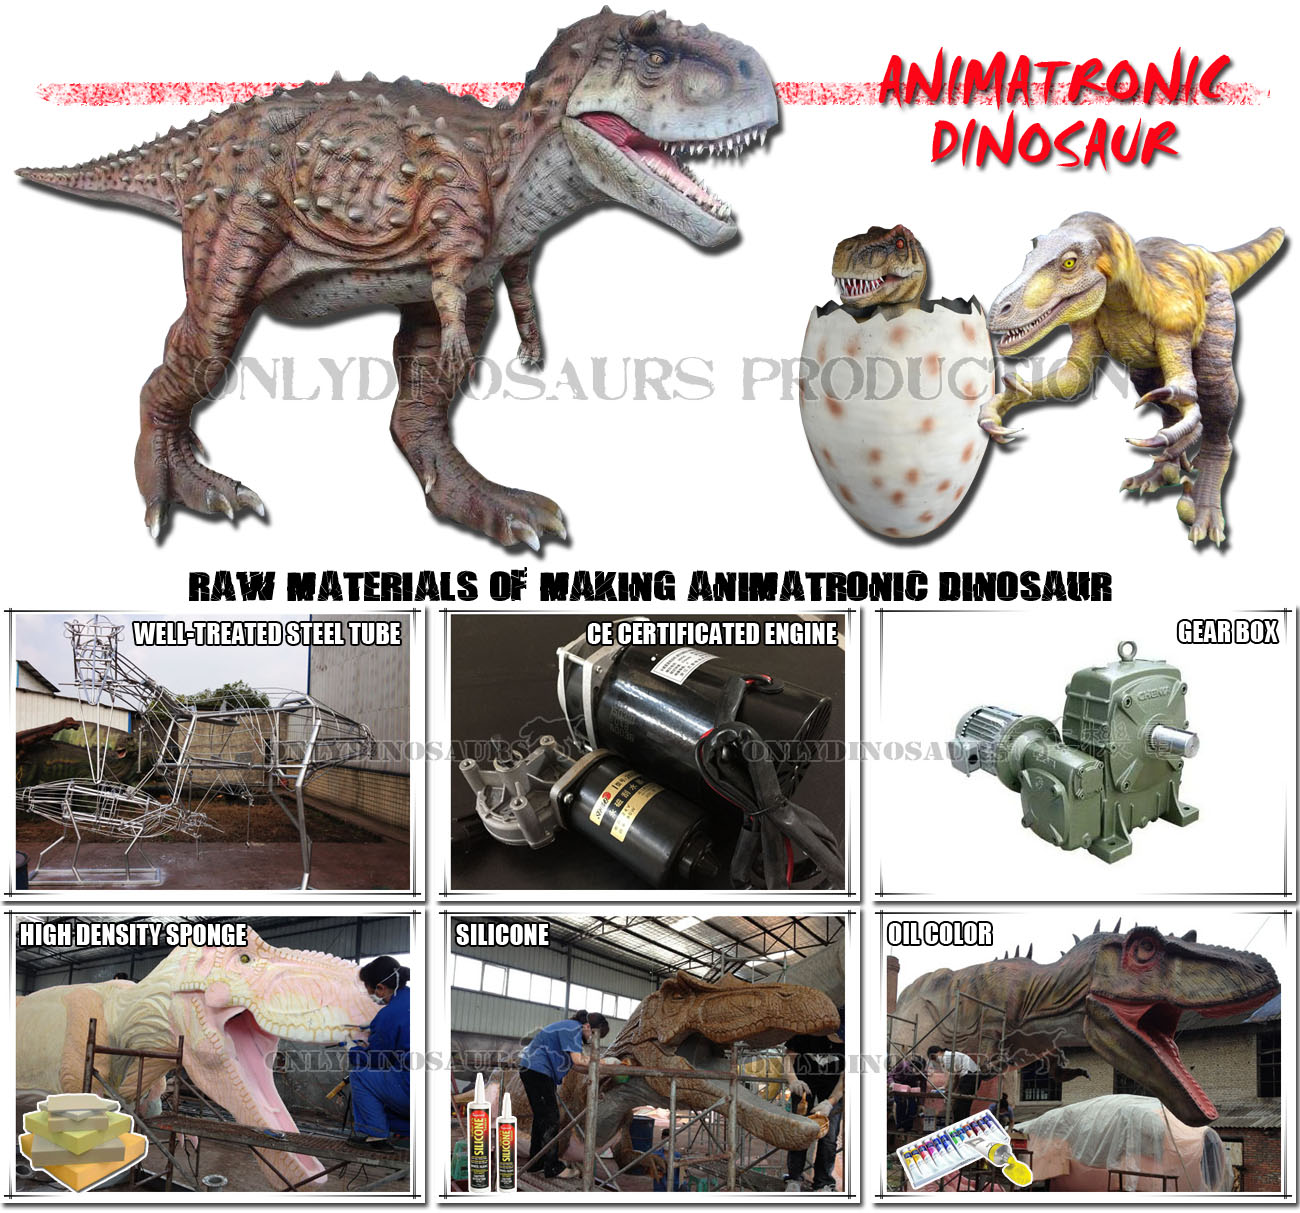 Raw Materials of Making Animatronic Dinosaur